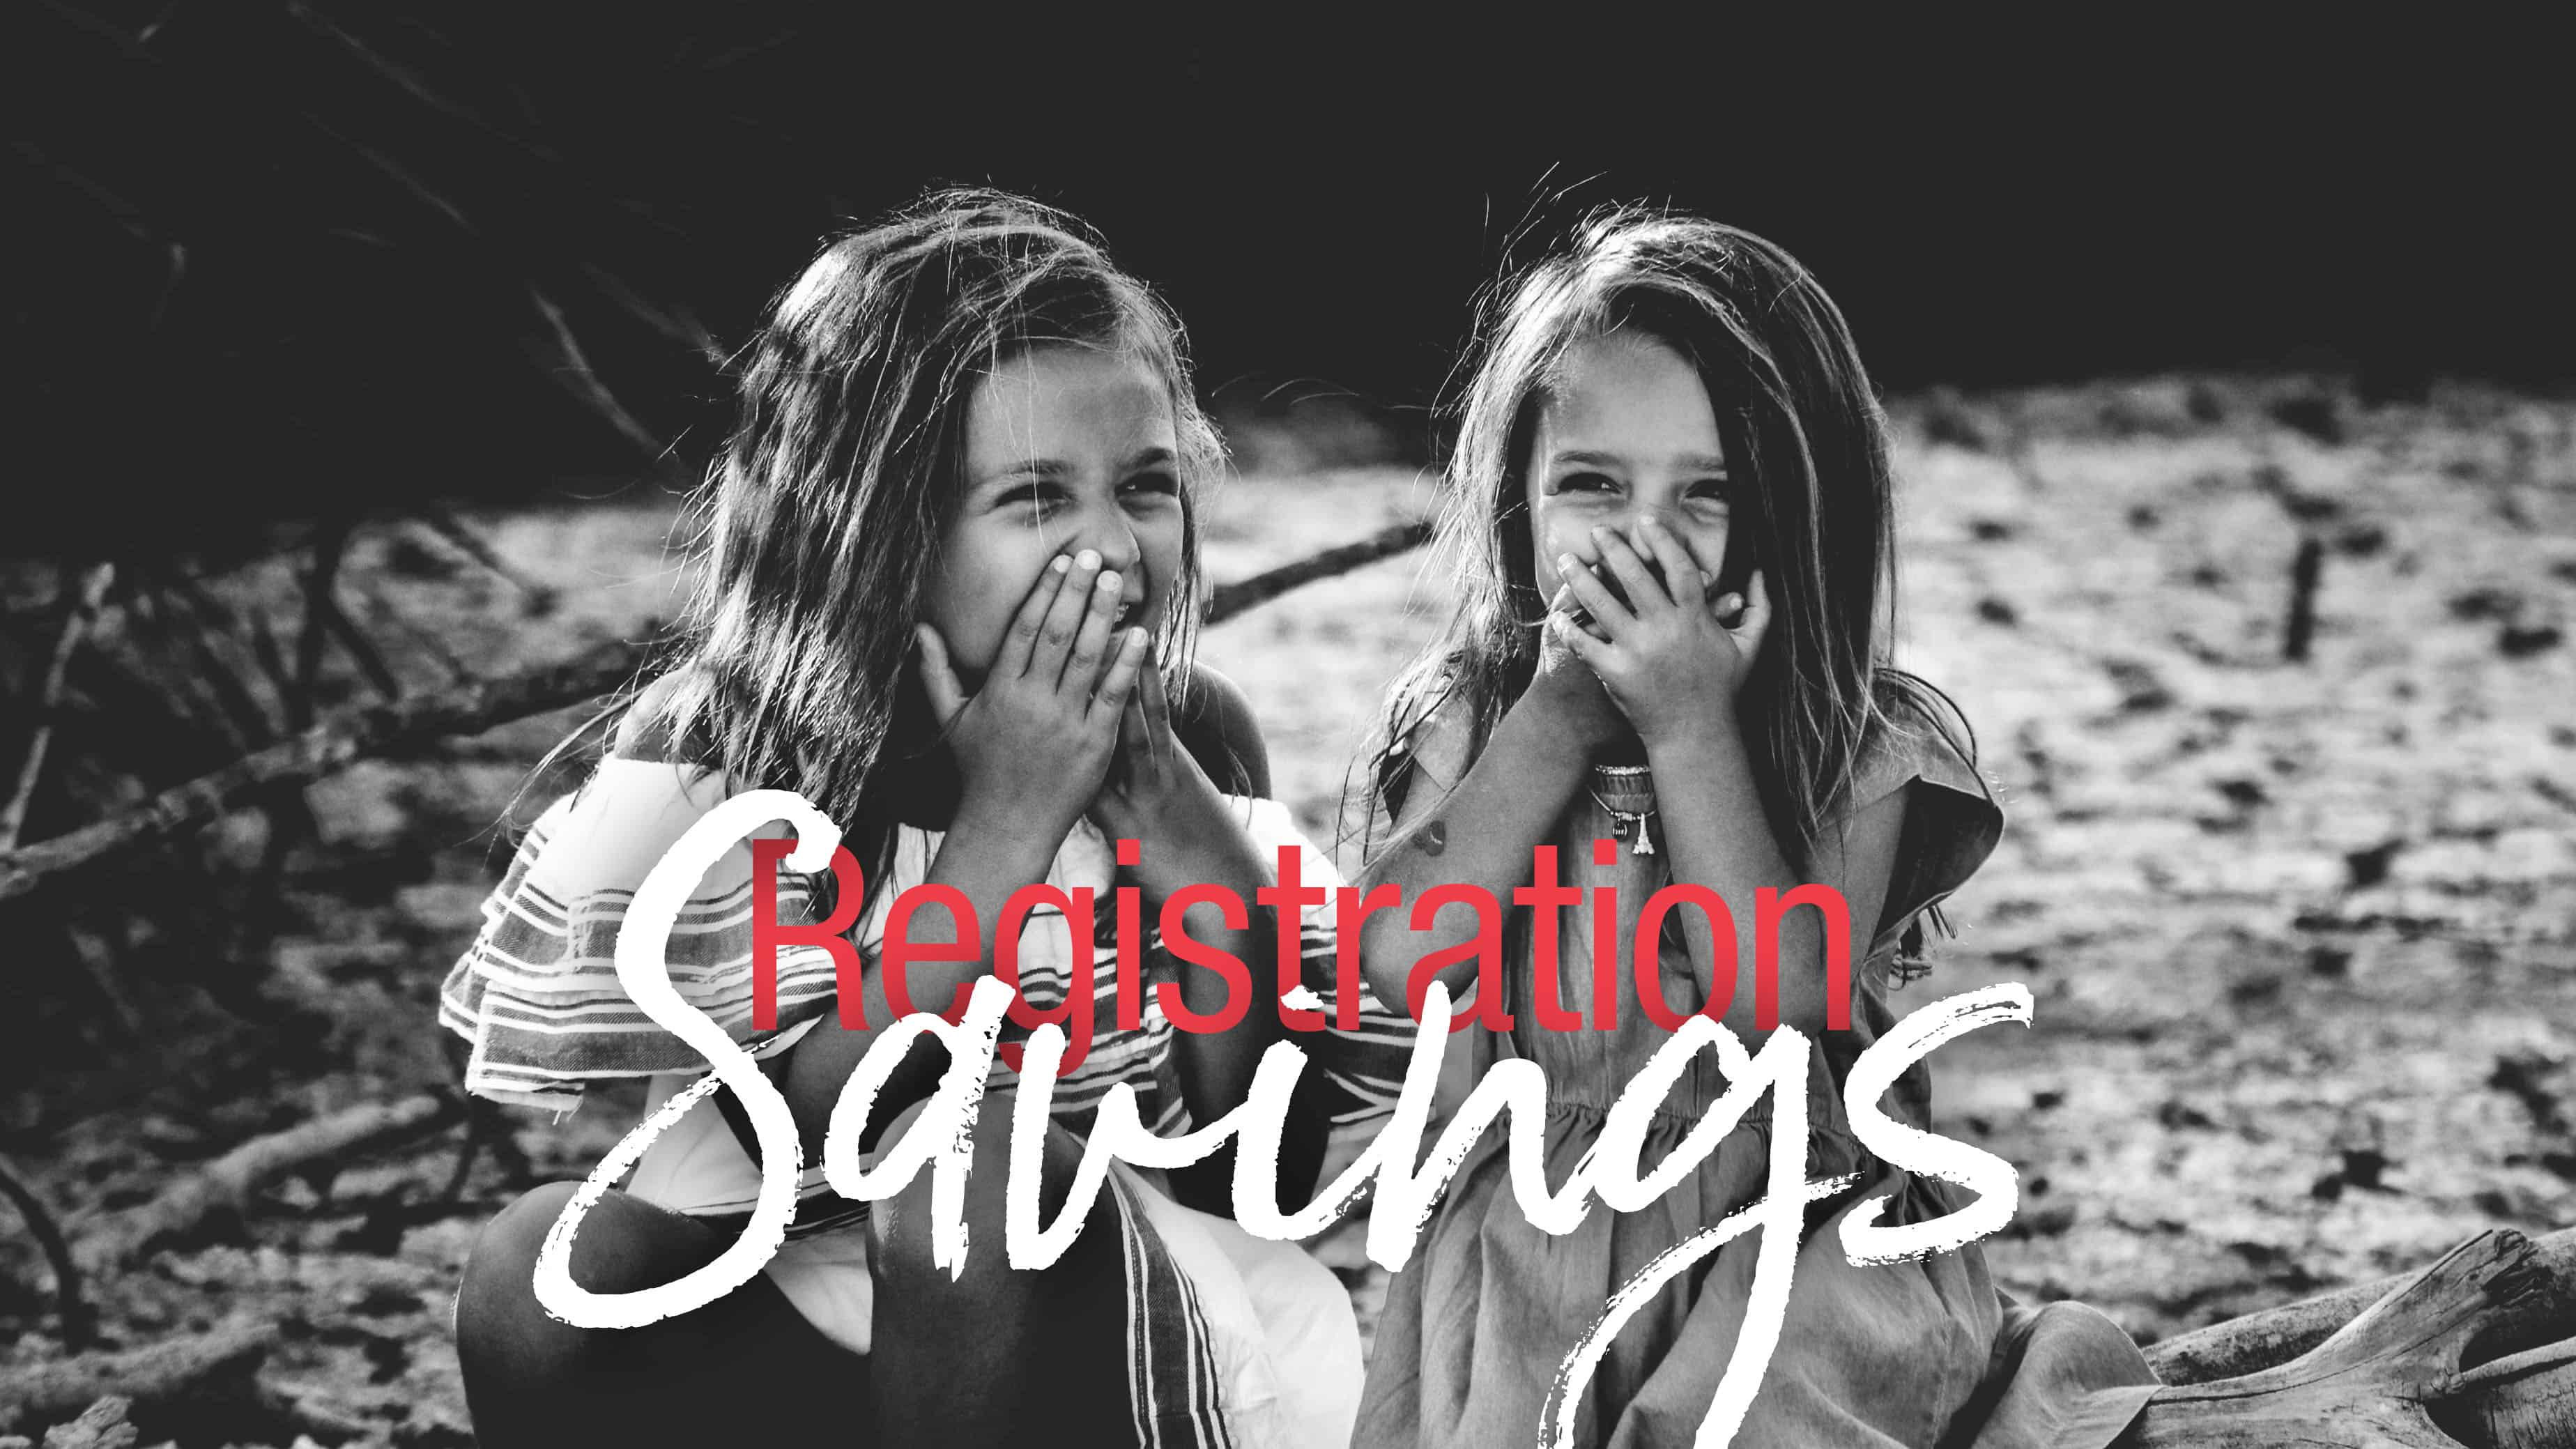 Learn more about our Registration Savings Available!